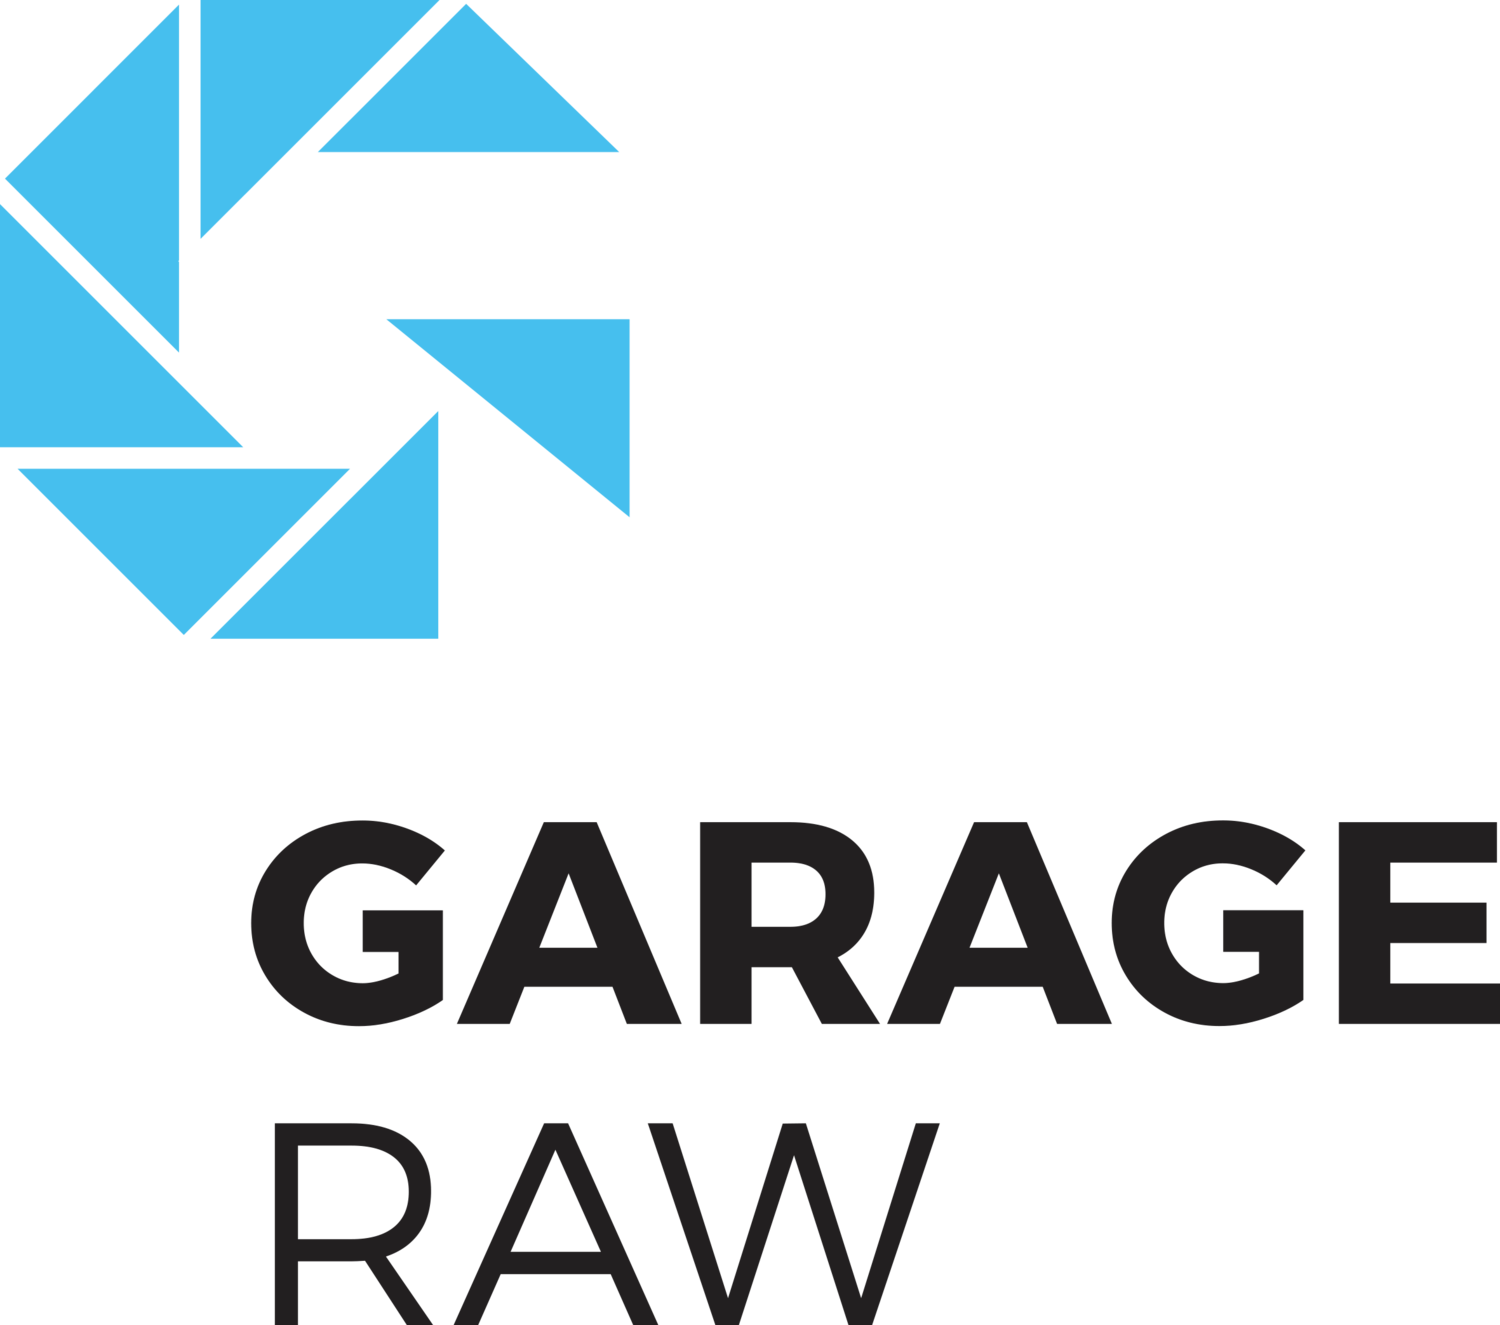 Garage Raw | Agenzia di Content e Digital Marketing